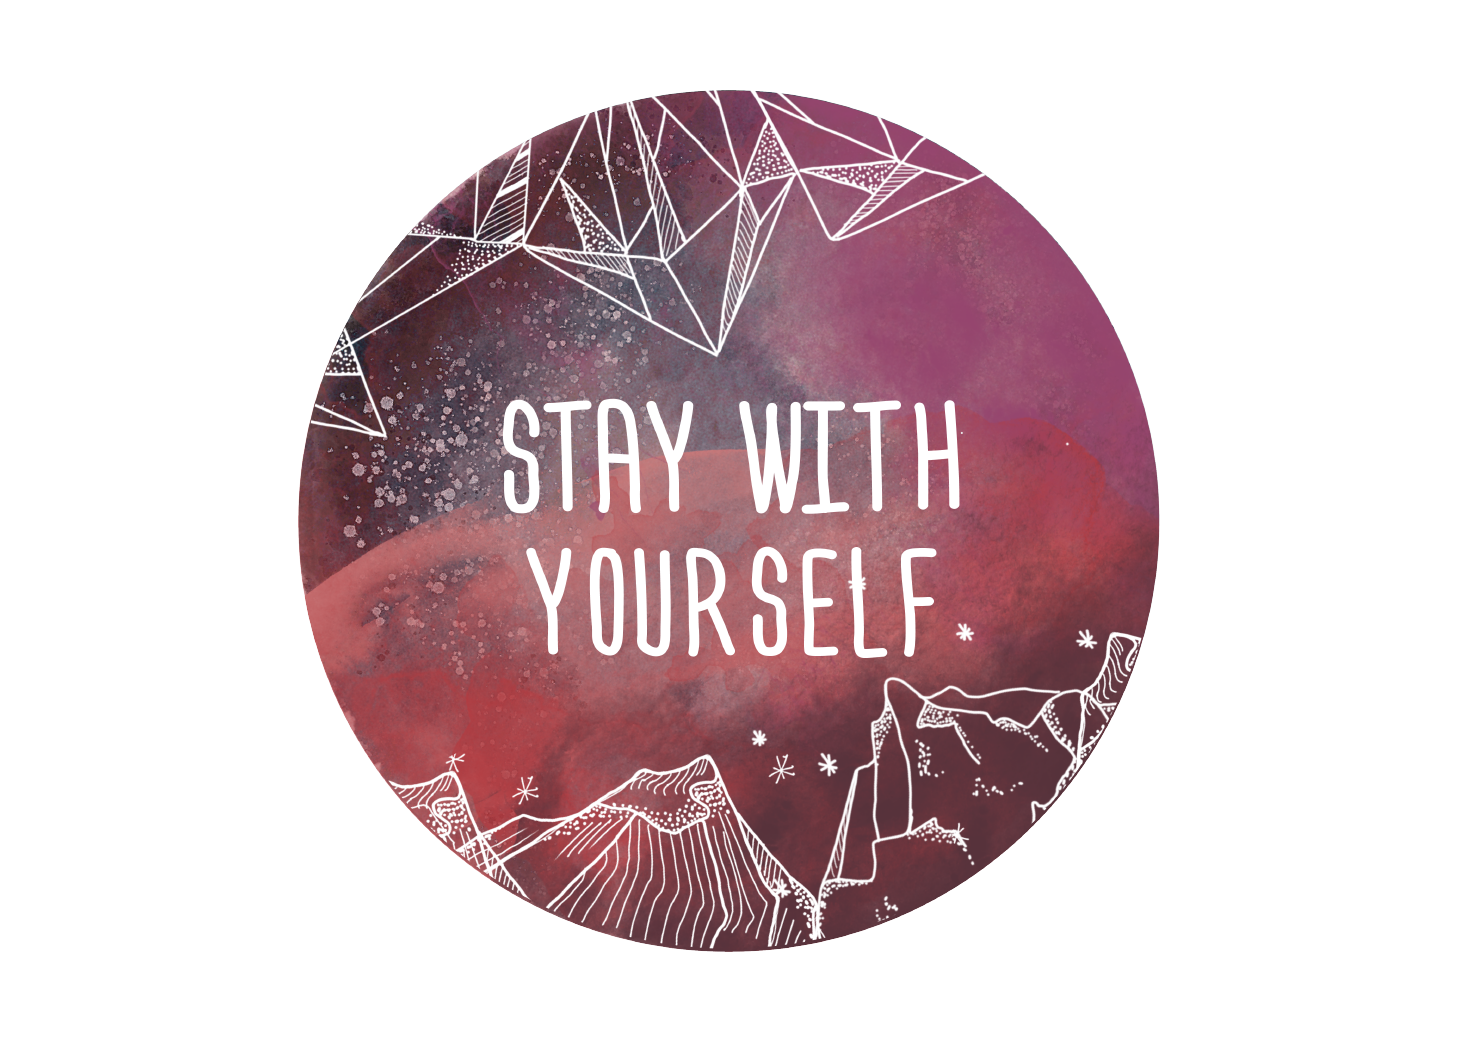 Stay With Yourself